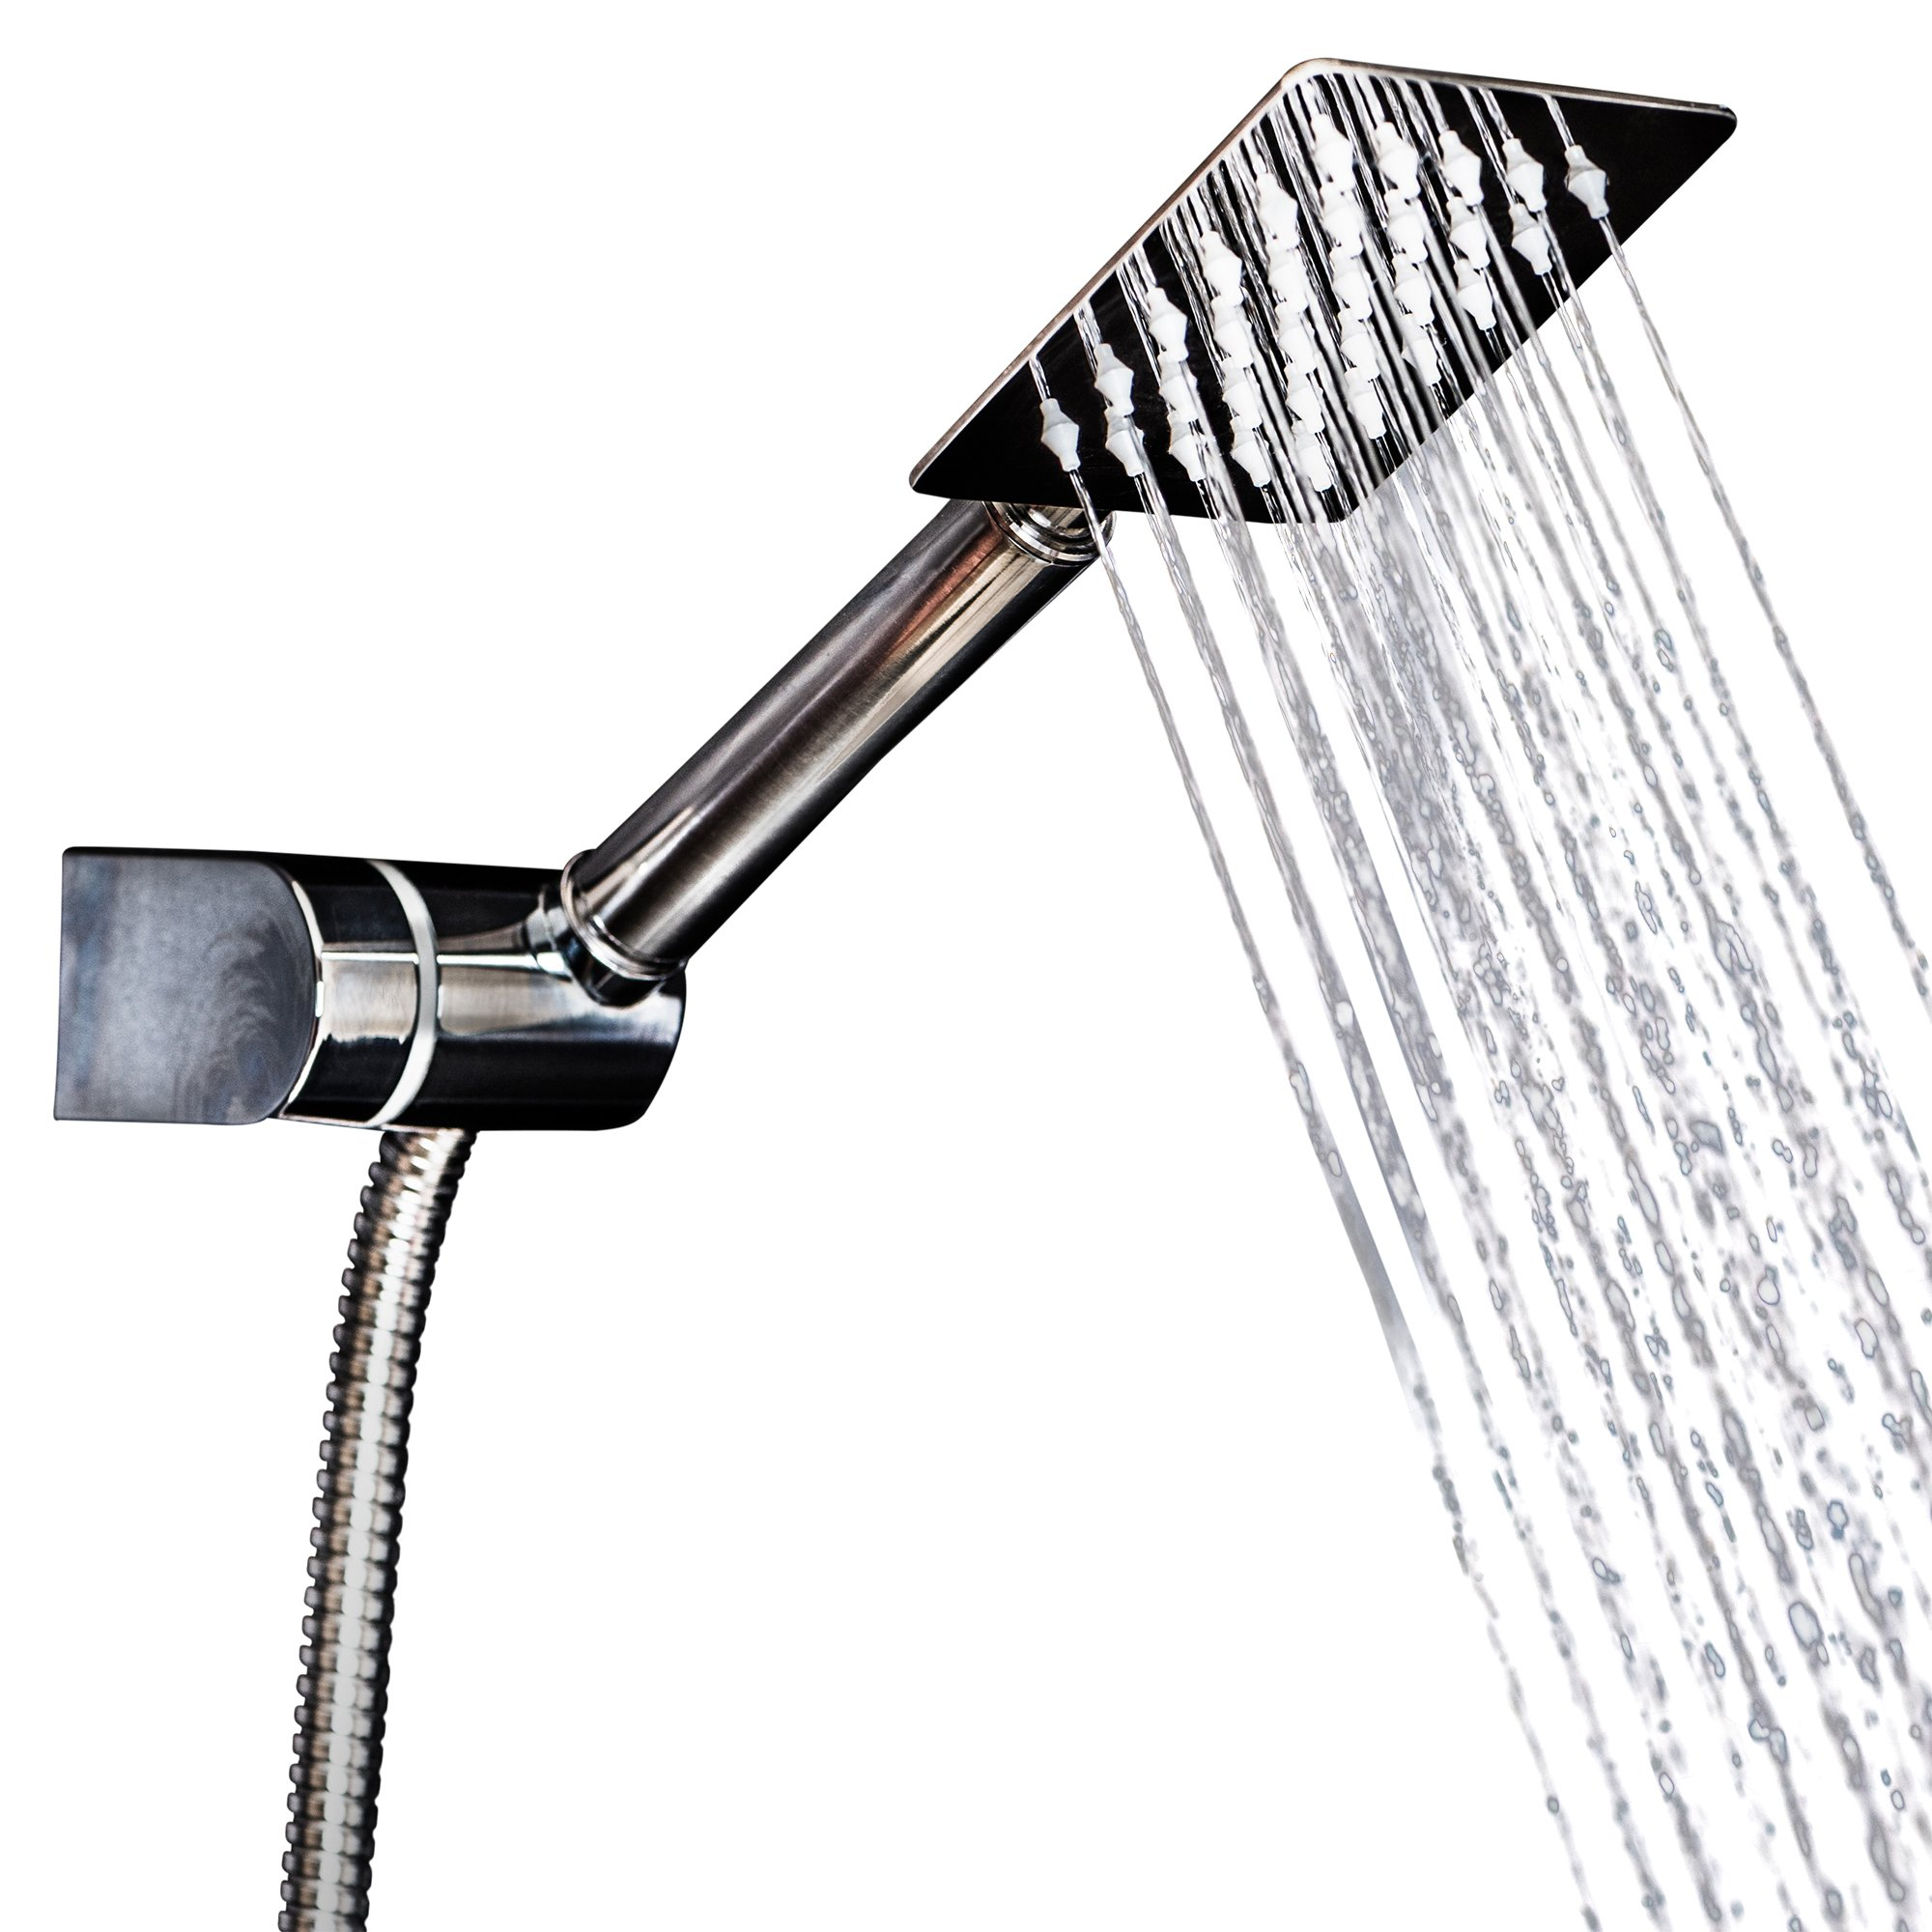 Handheld Shower Head Set - Square Rain Head + 5 ft Shower Hose | Stainless Steel 304| High Pressure |with Shower Mount Bonus for a Luxury Shower Experience by Happy-li